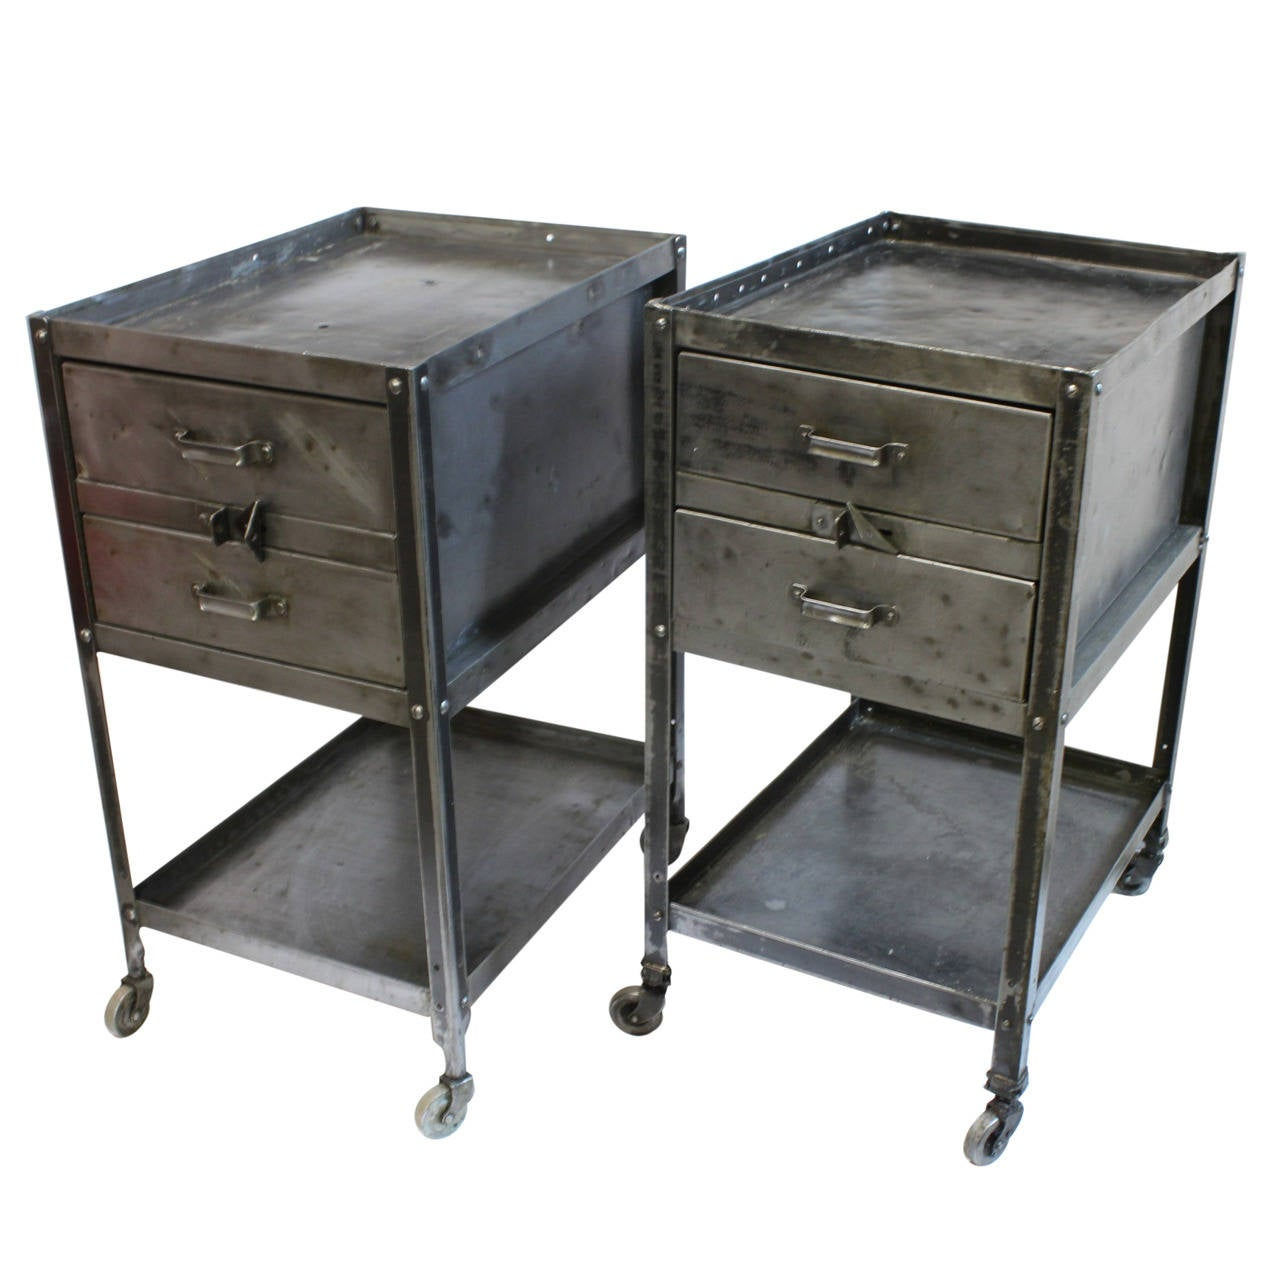 1940s American Industrial Metal Side Tables By Lyon Co At 1stdibs